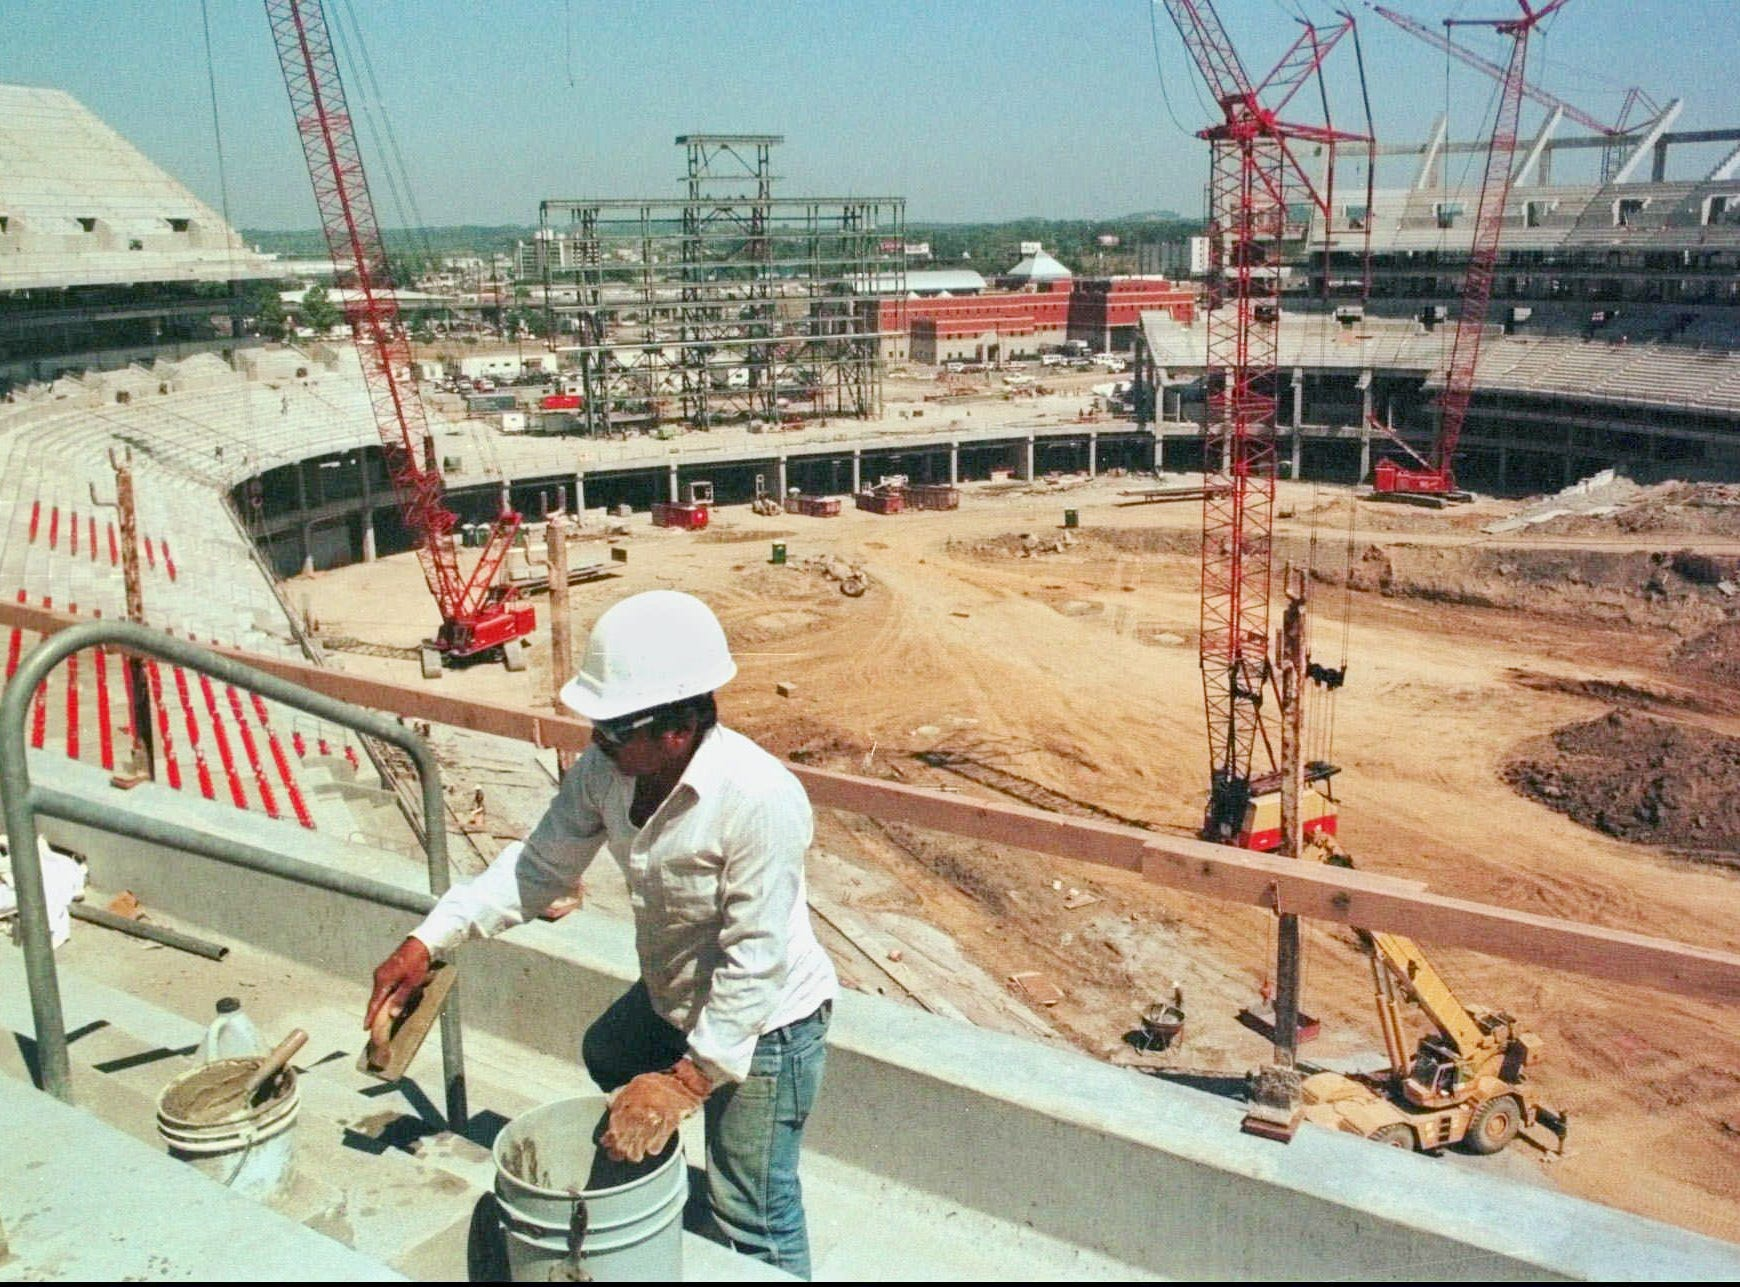 Construction worker Ramiro Noguera works on concrete steps in the Tennessee Oilers' new 67,000-seat stadium in Nashville Sept. 3, 1998. A place to call home is something the team is looking forward to. When the Oilers start the 1999 season in the yet-to-be-named stadium, it will be their fourth home field in four years.